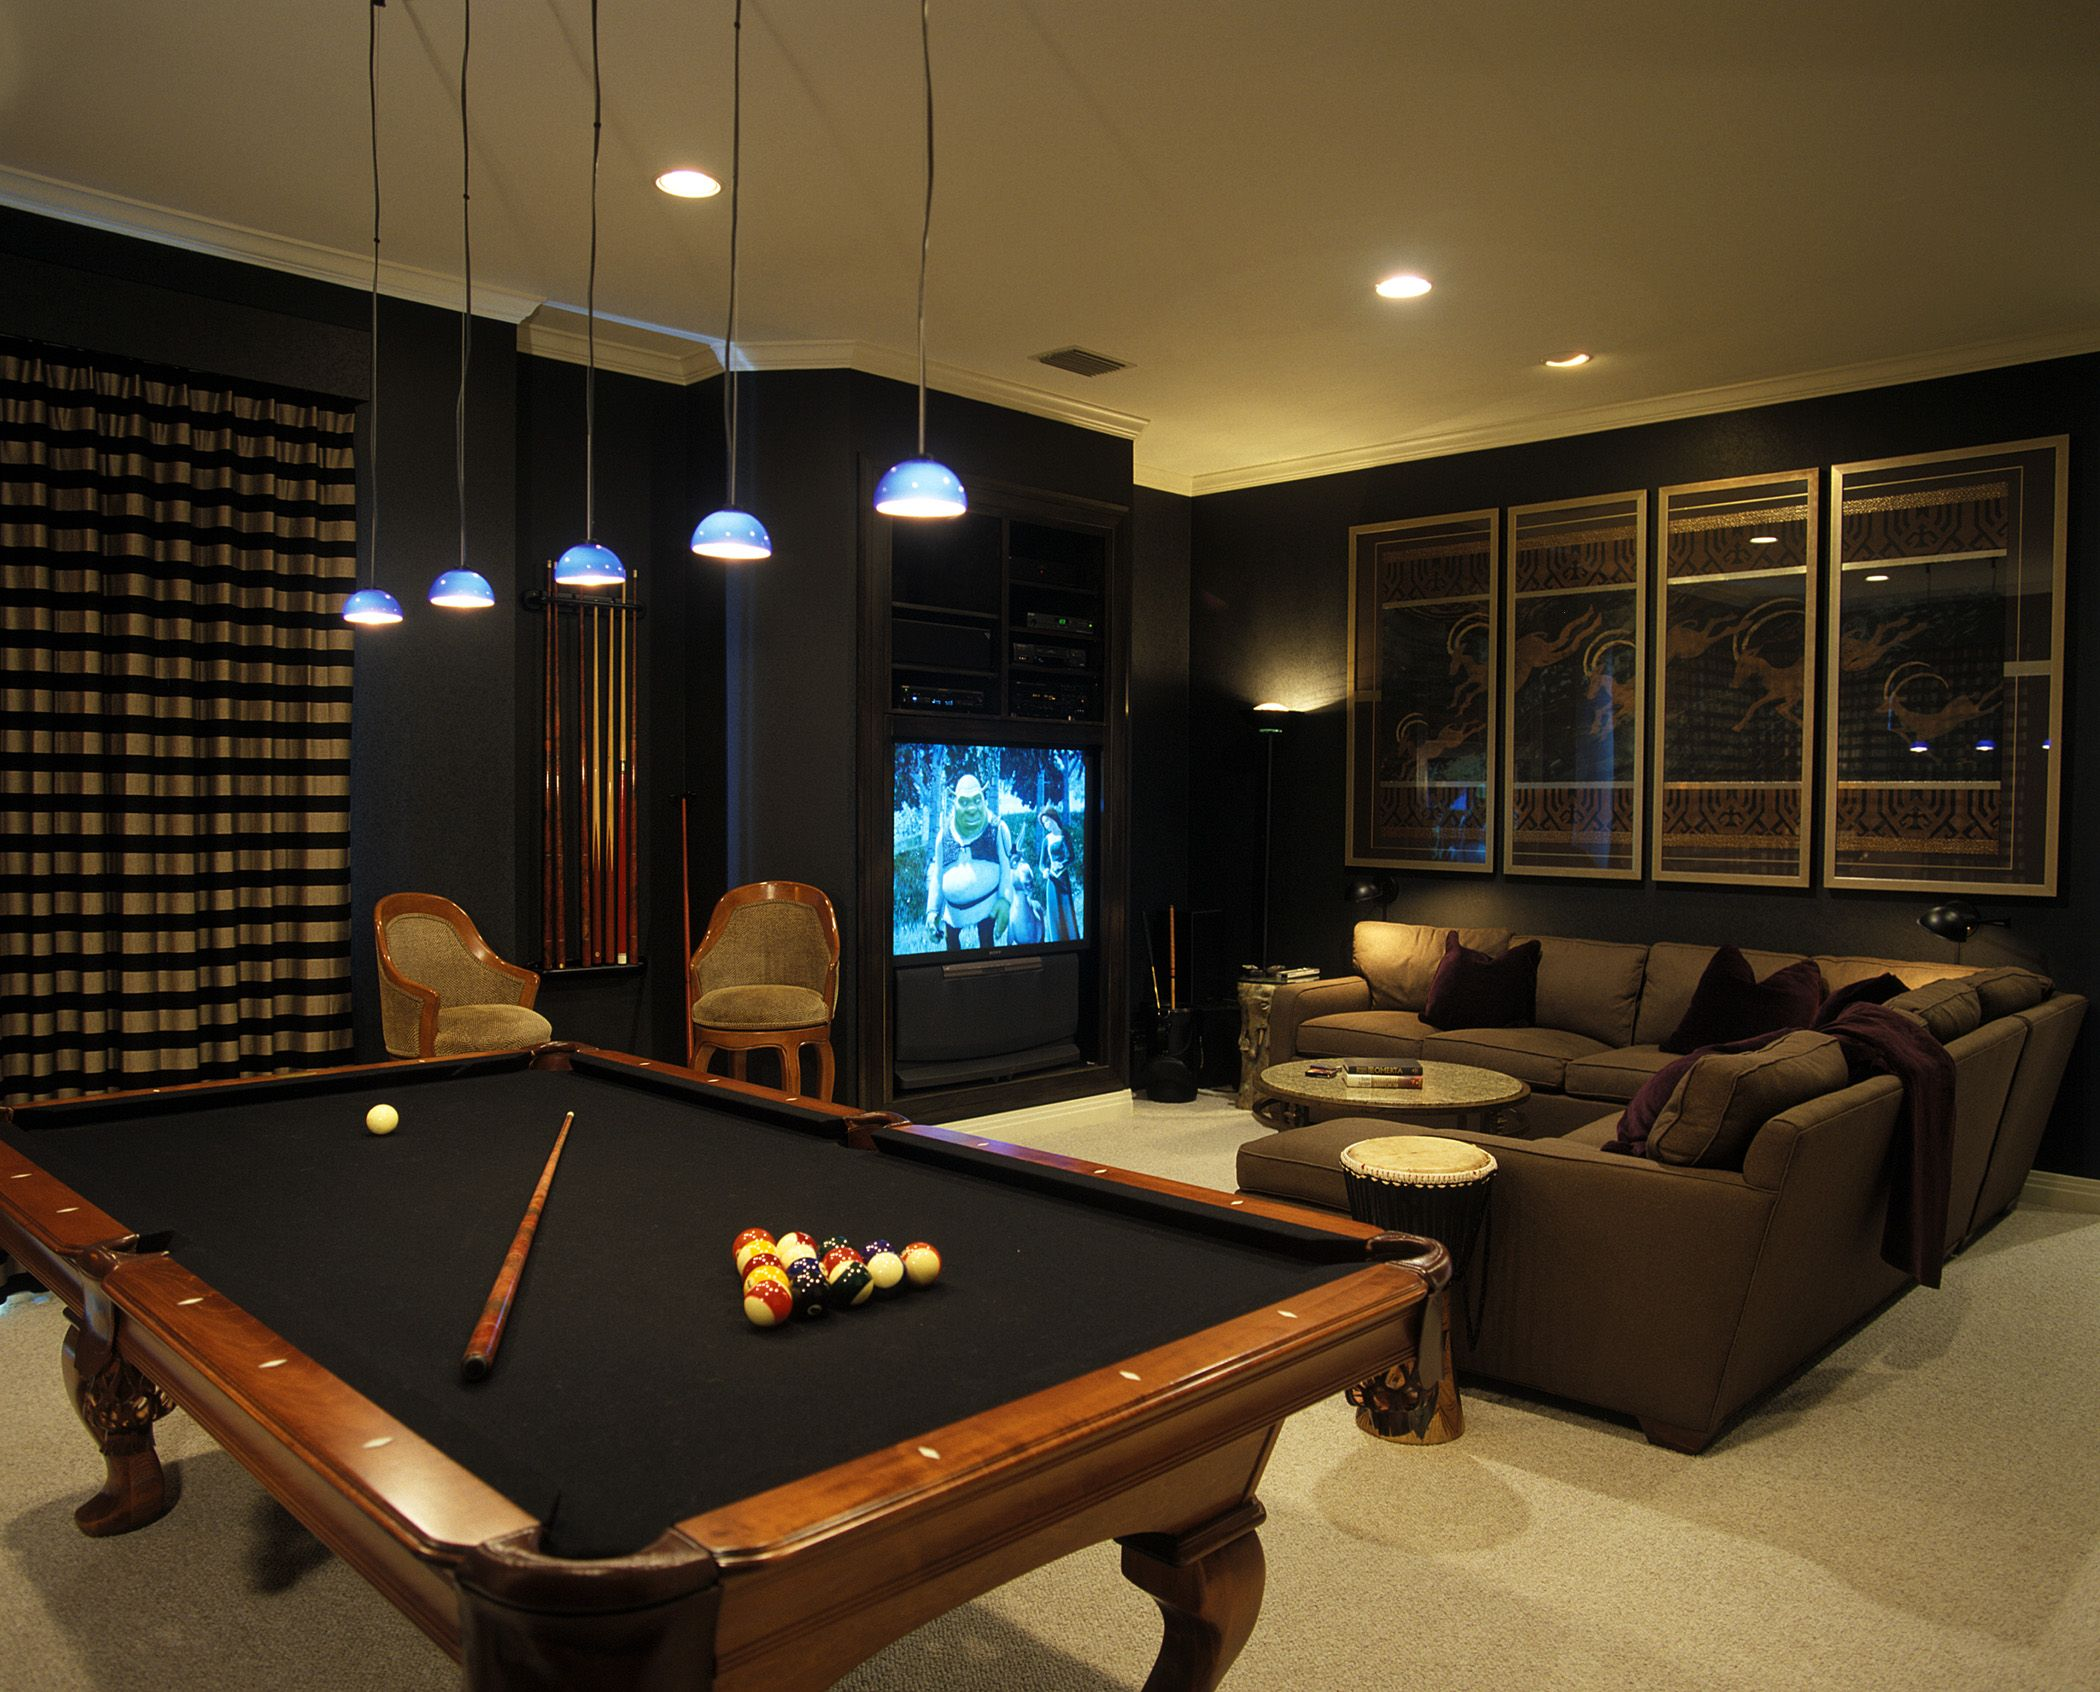 Elegant Pool Hall Decor